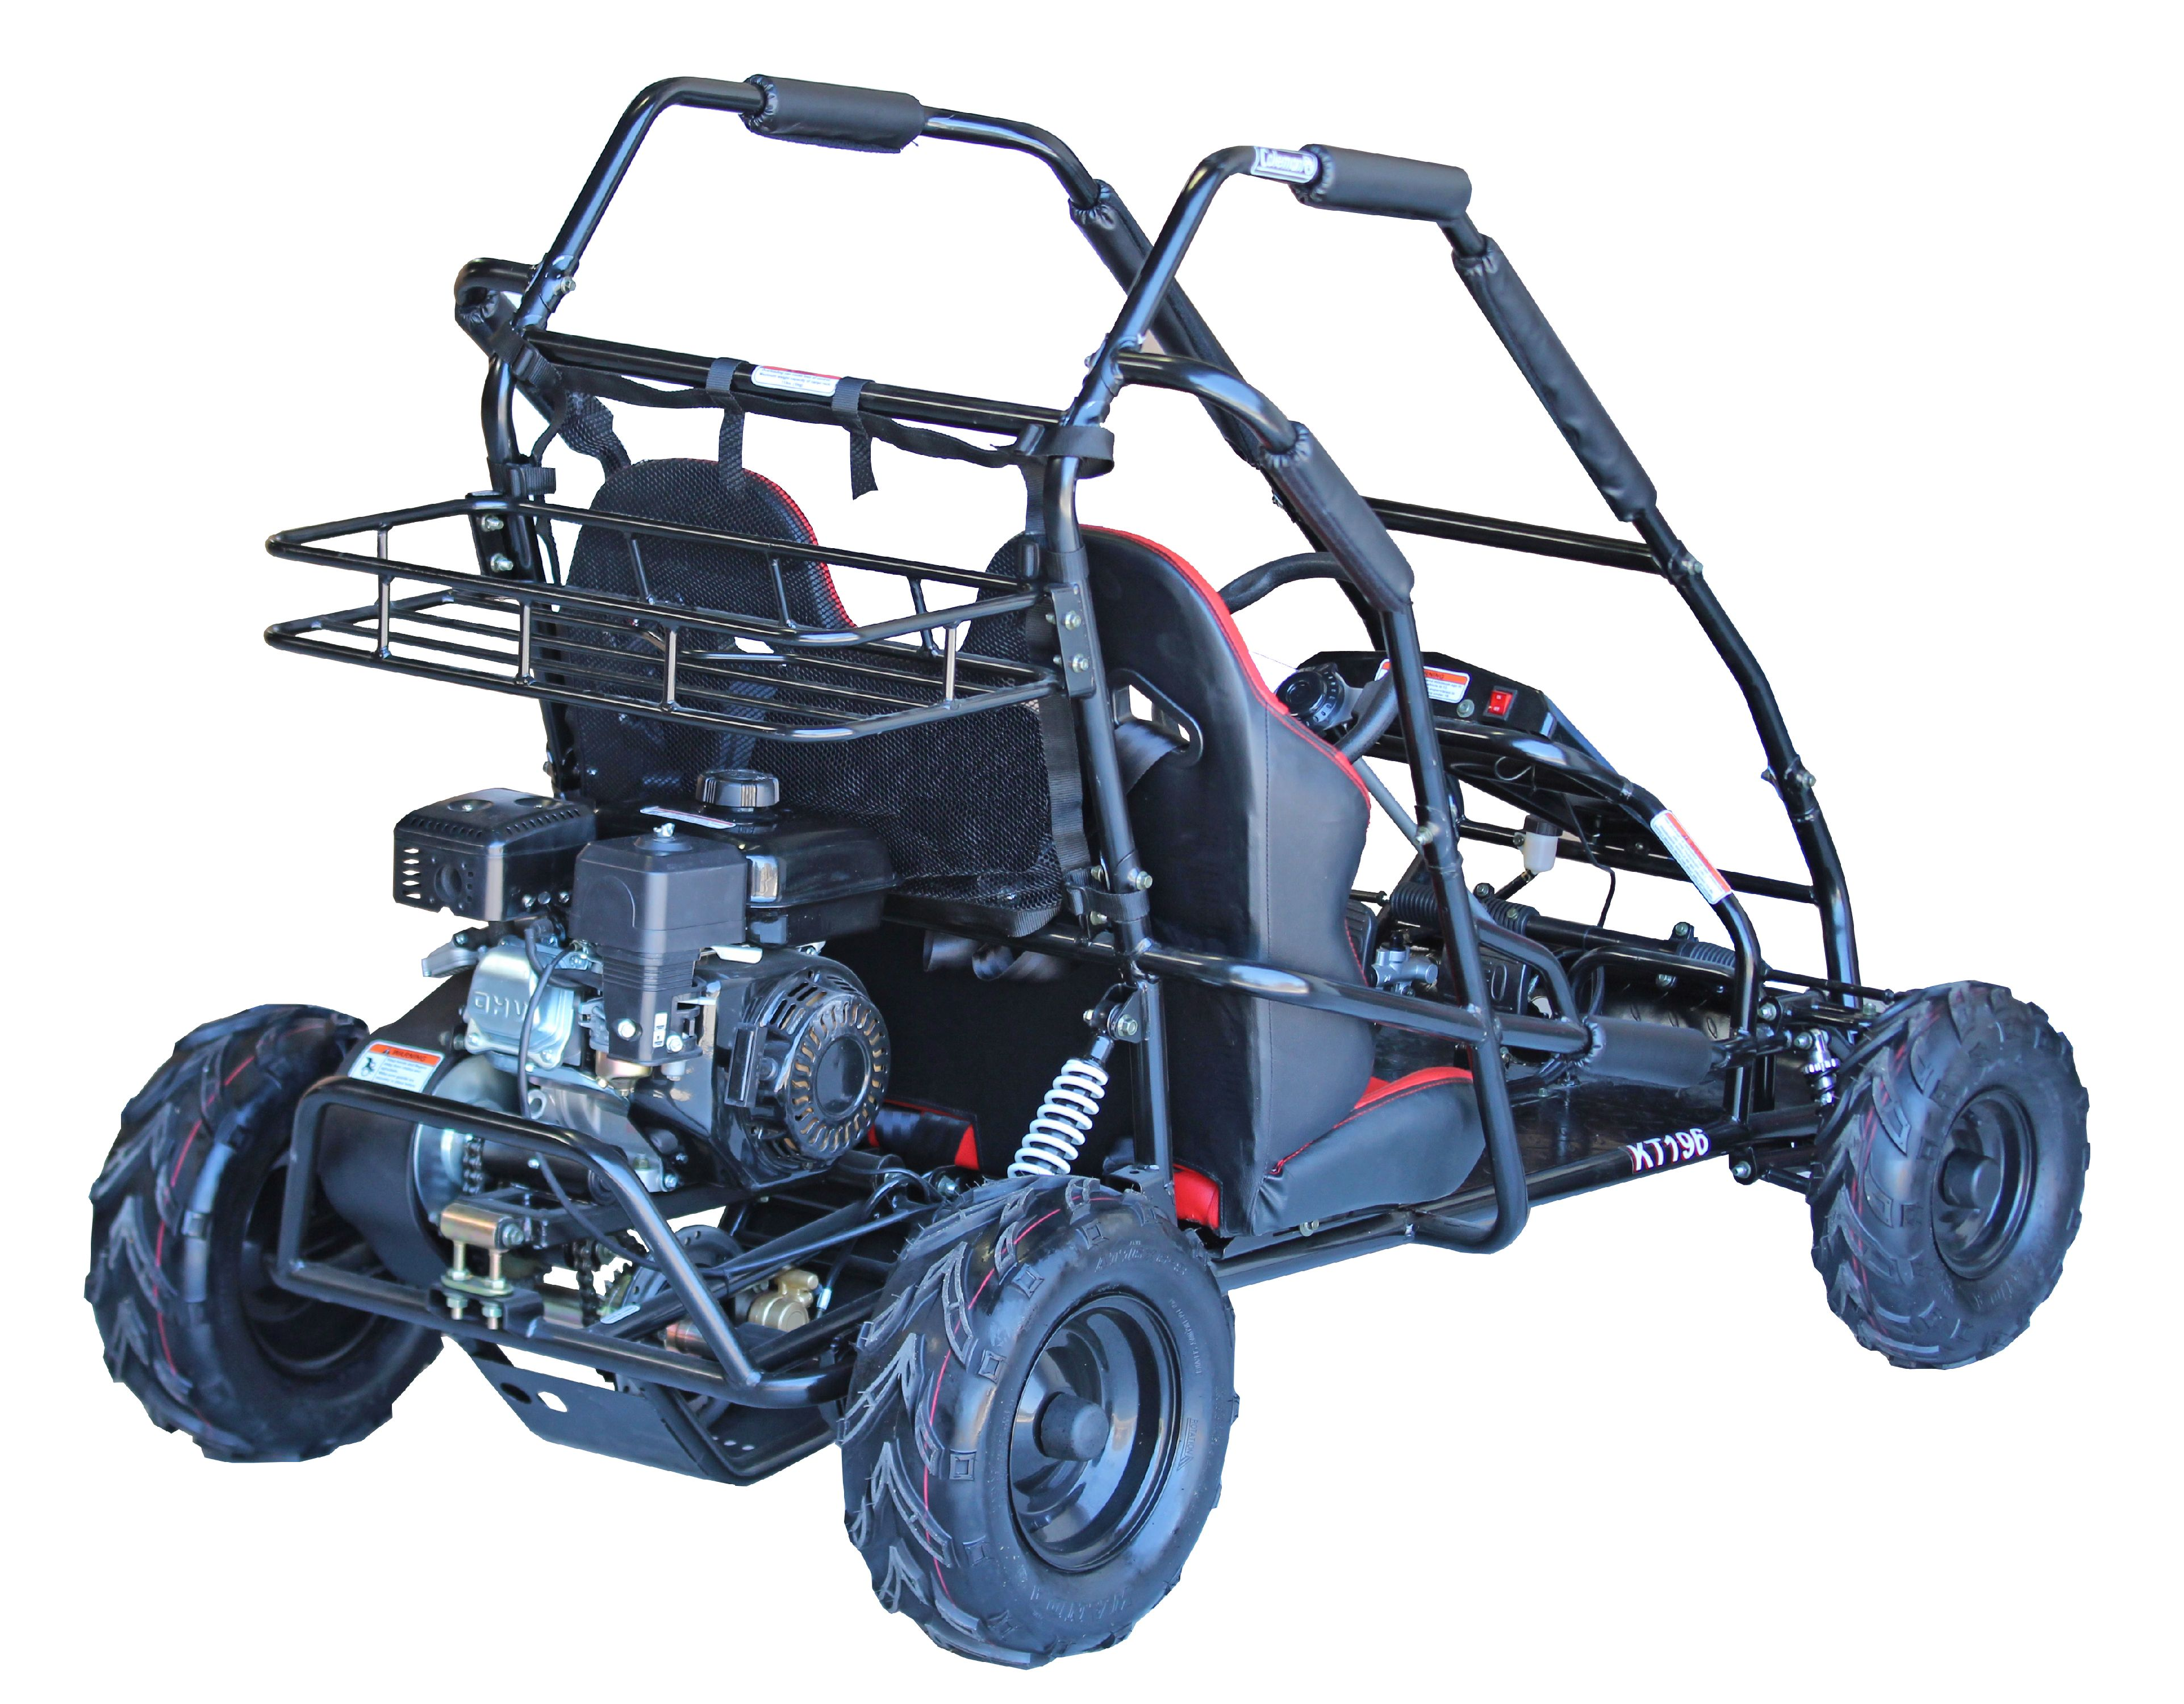 Coleman Powersports Kt196 196cc Gas Powered Go Kart Black Country Clipper Kohler Command Wiring Diagram